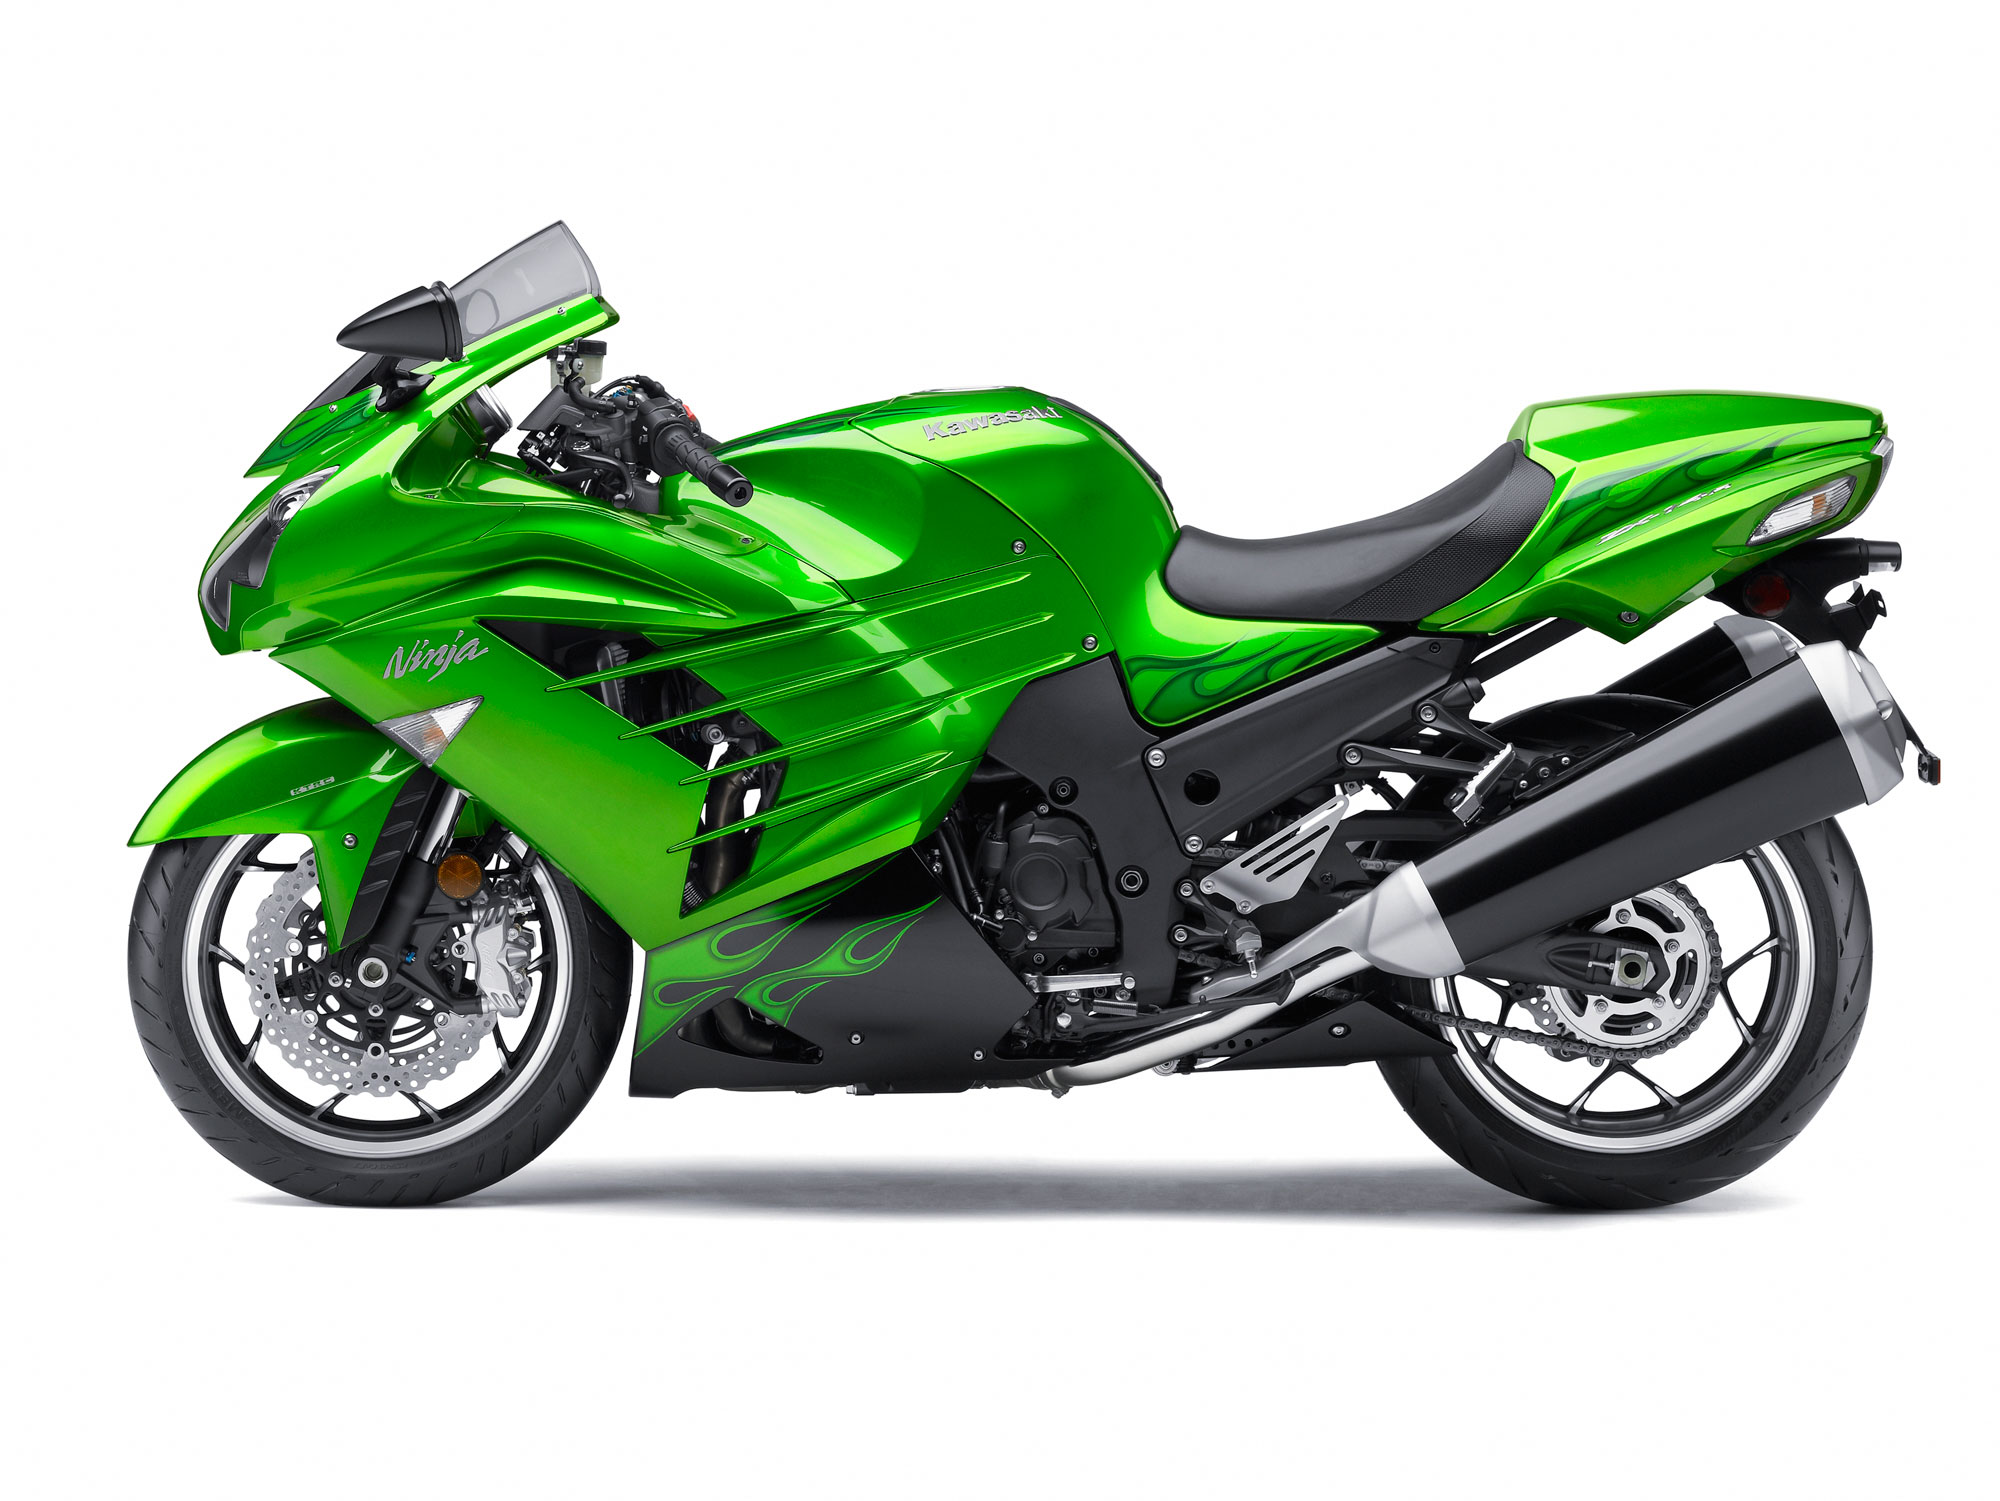 2012 Kawasaki Motorcycle Models